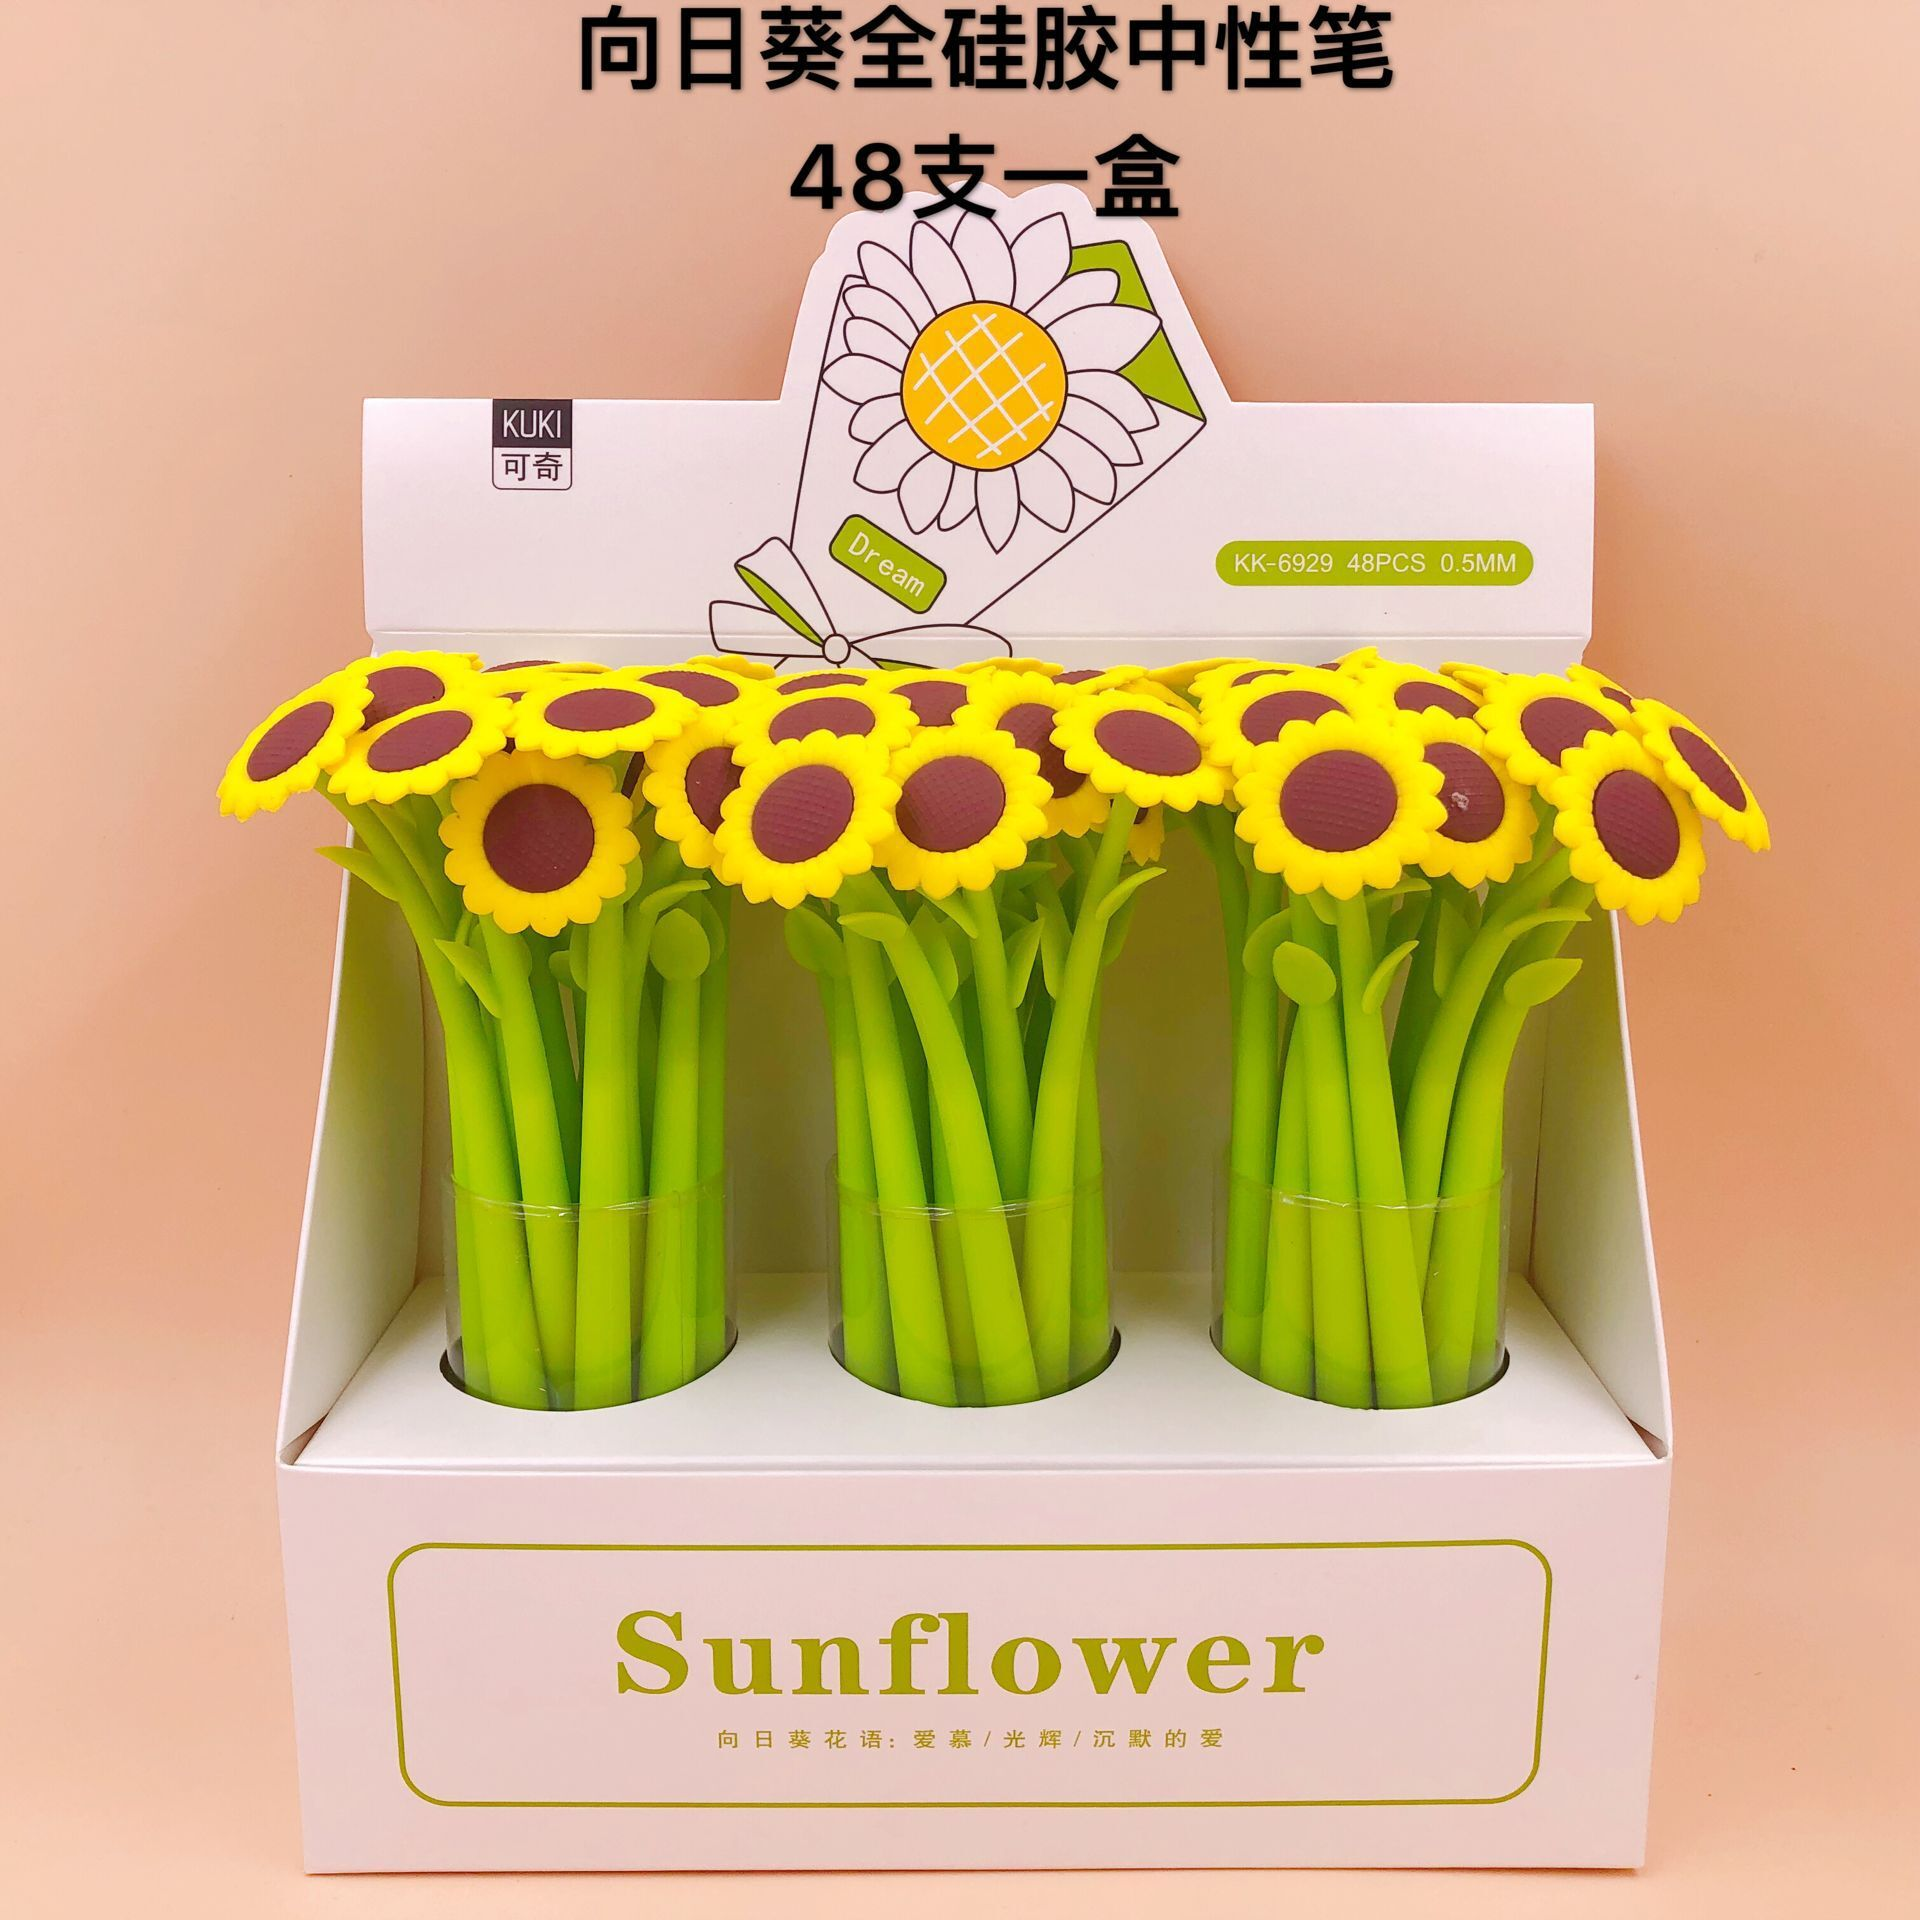 48pcs 1lot Cute Gel Pens Colored Ink sunflower Kawaii Ballpoint School Canetas Boligrafos Gift Stationery Office